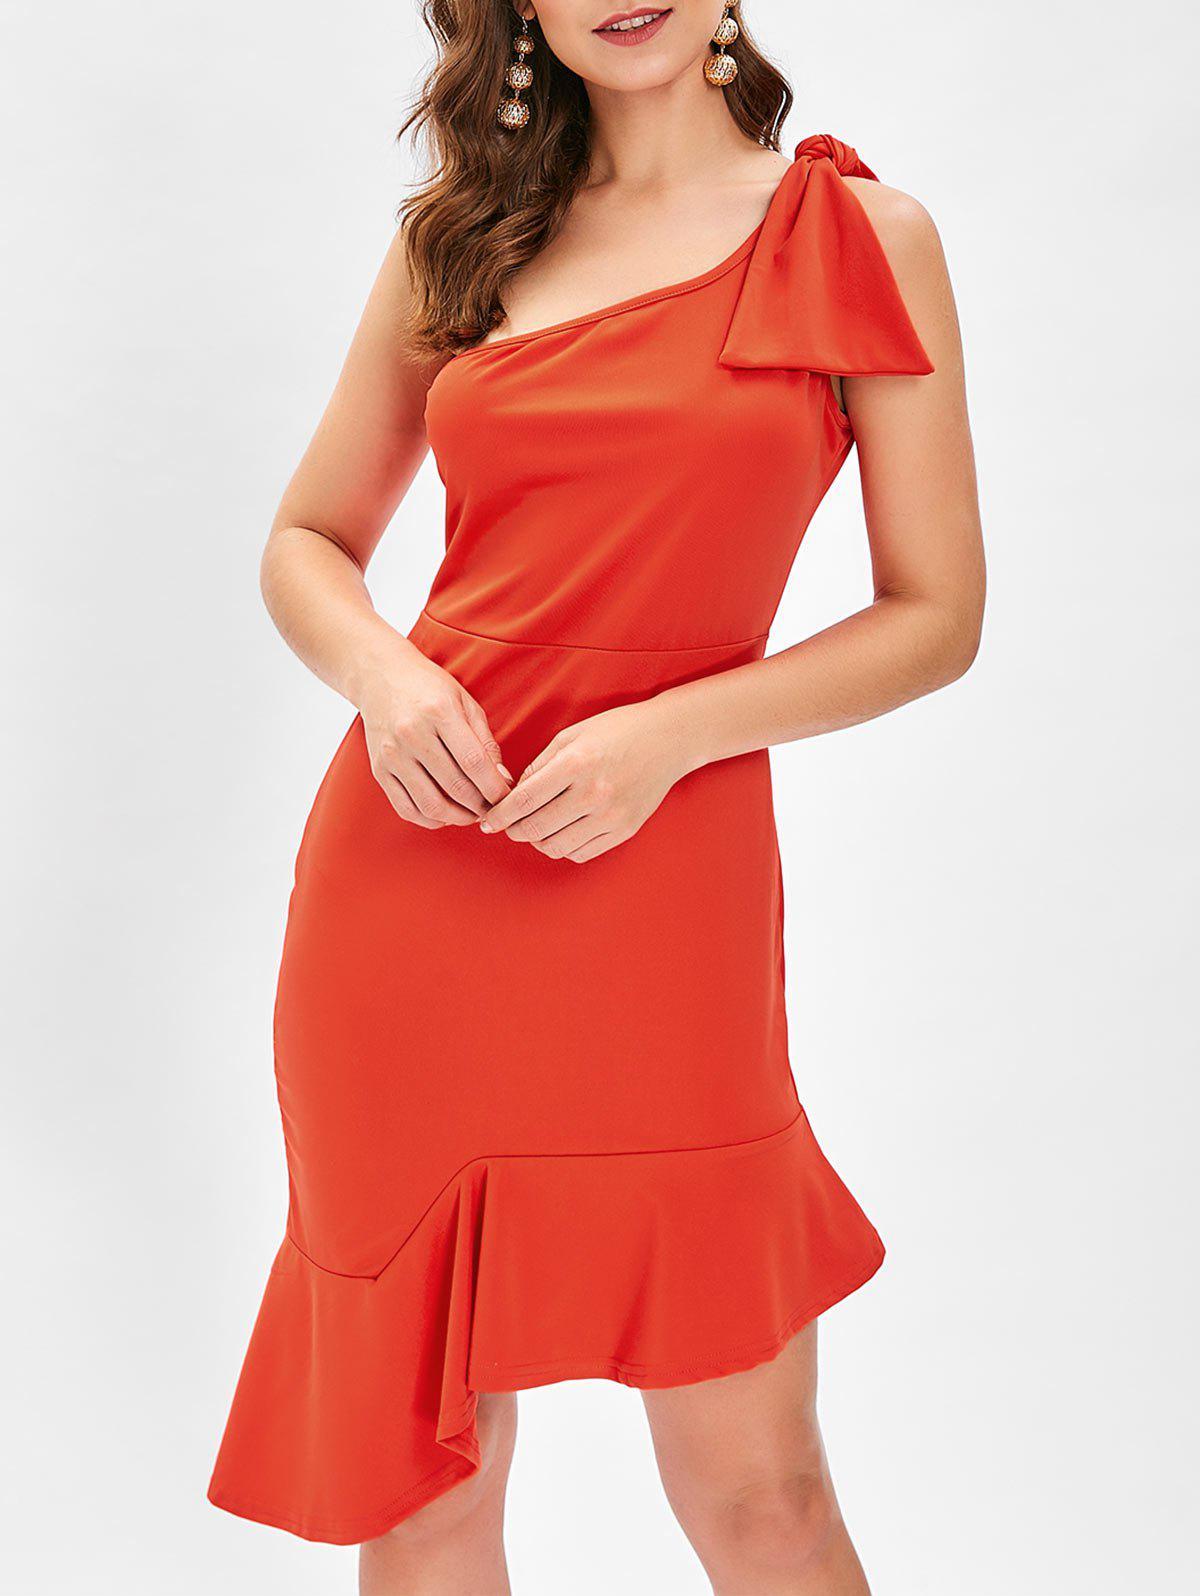 Store One Shoulder Bowknot Fishtail Dress